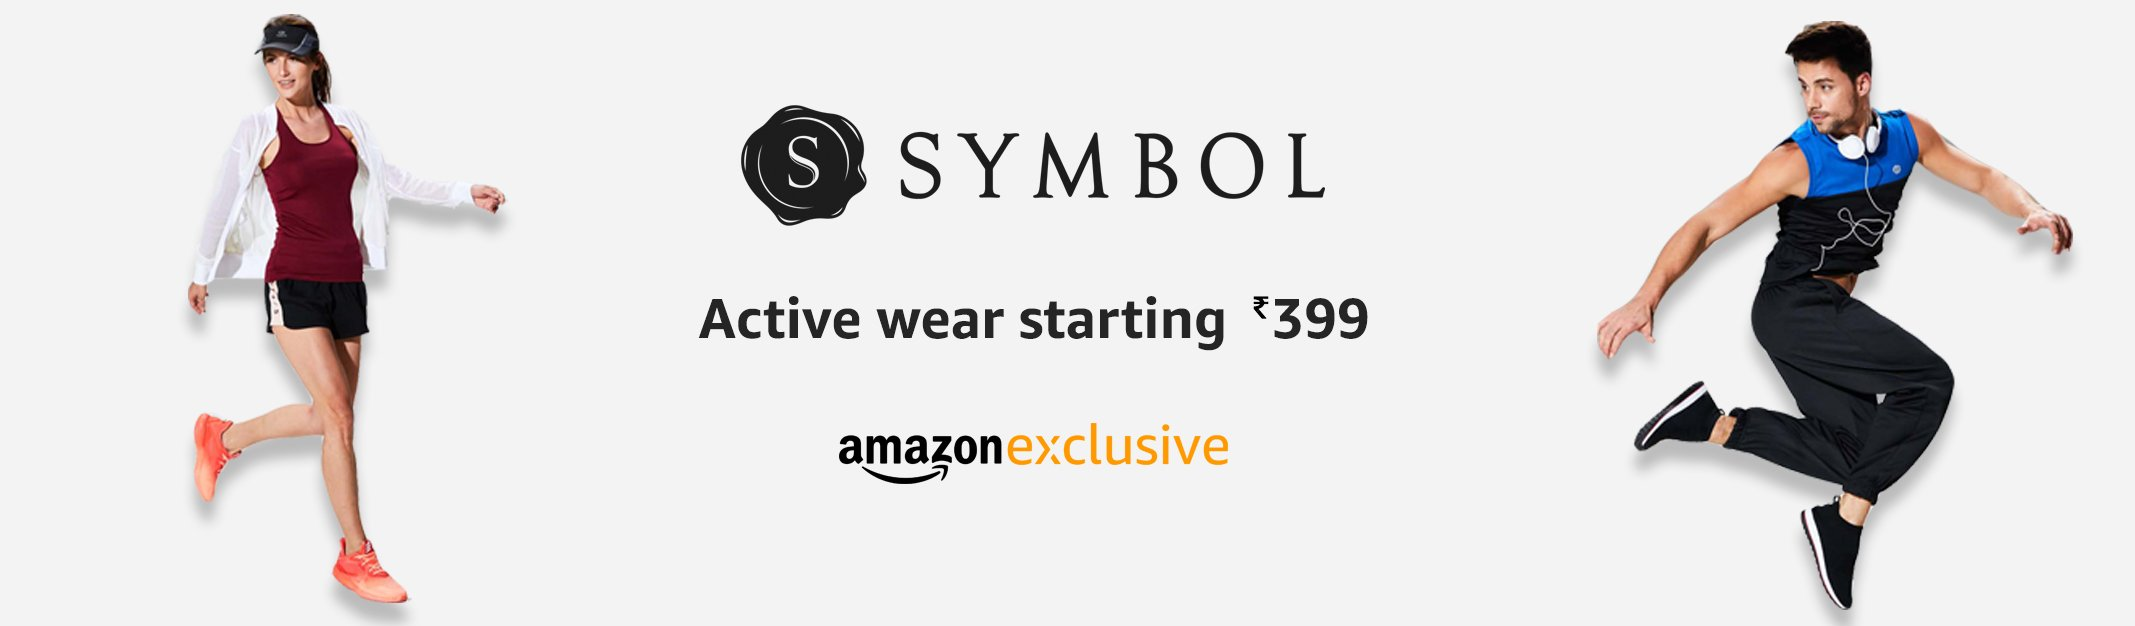 Active Wear starting 399 | by Symbol